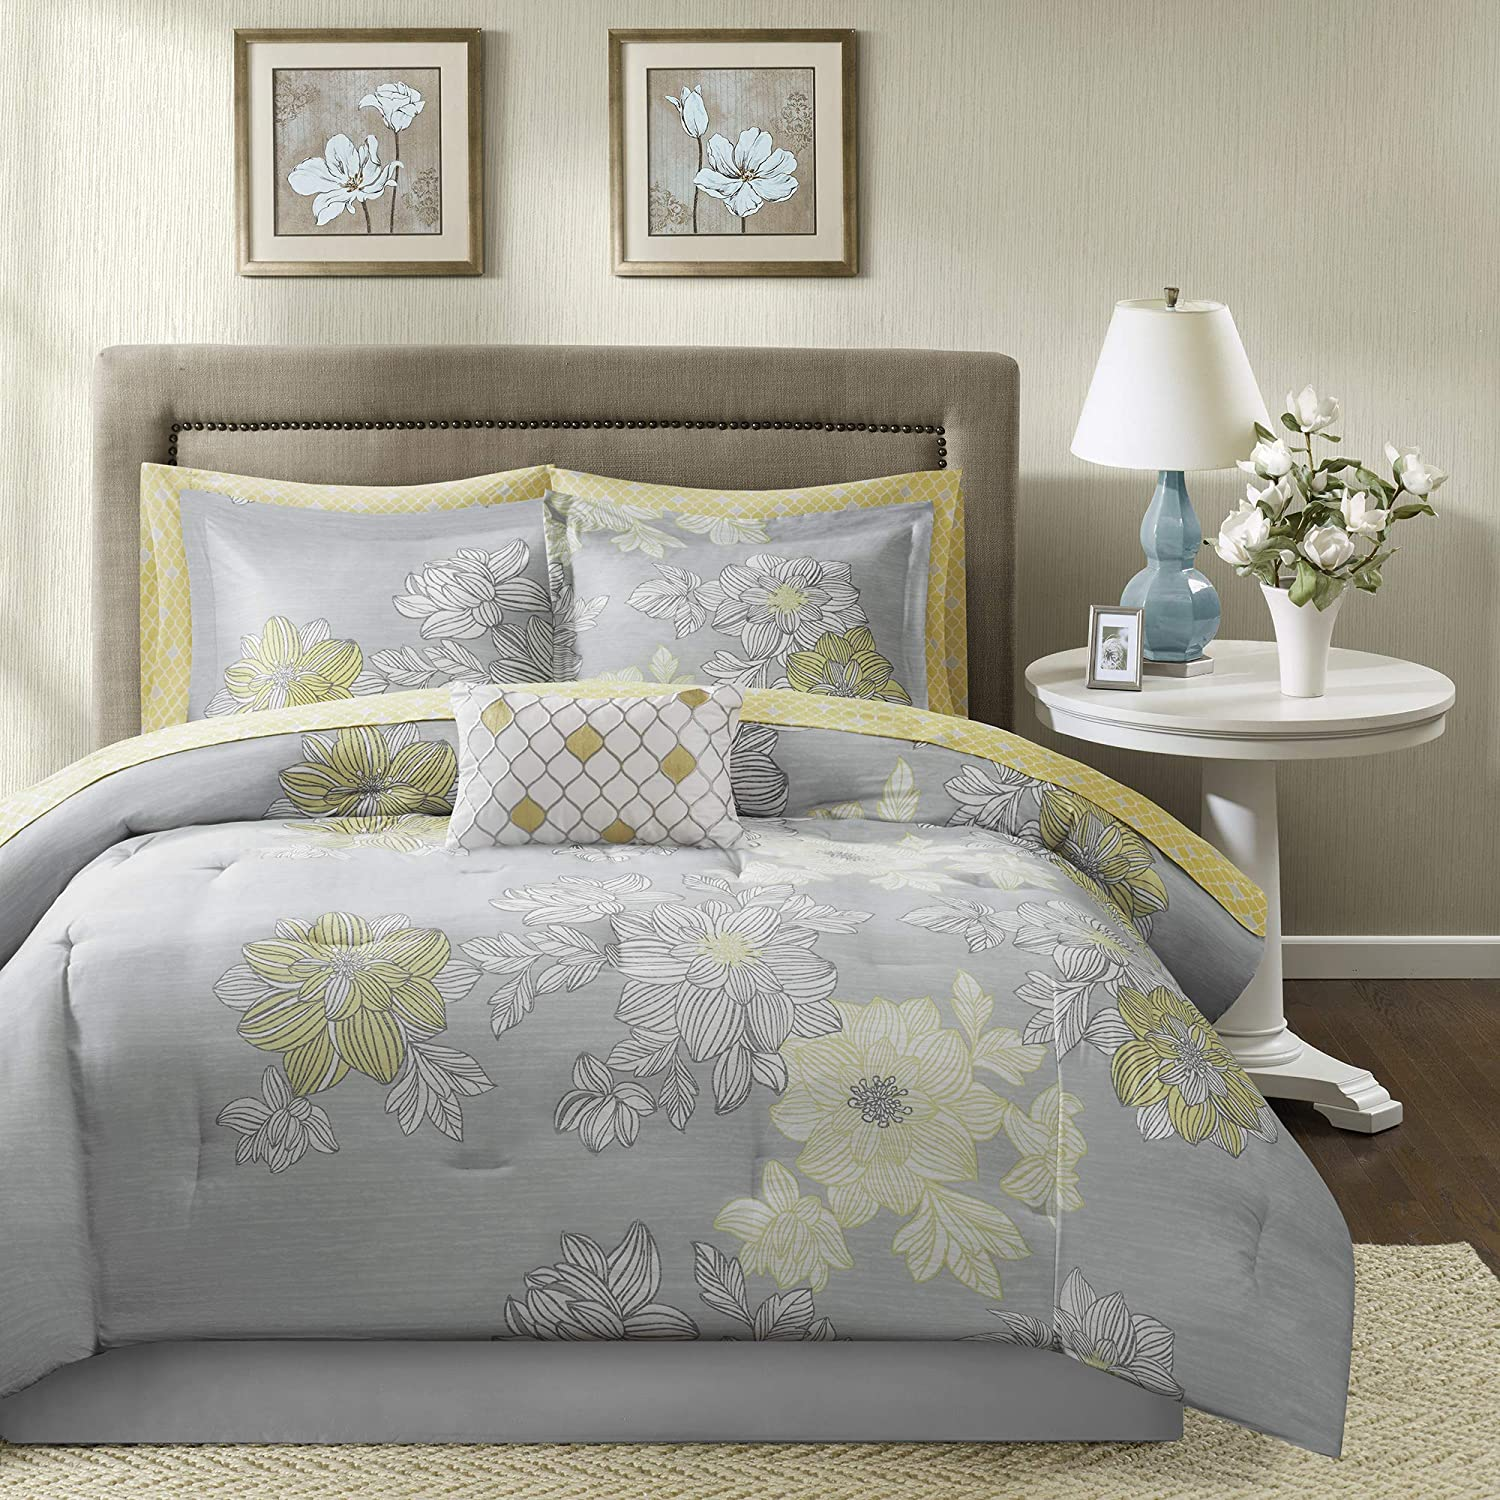 """Madison Park Essentials Cozy Bed in A Bag Comforter with Complete Cotton Sheet Set-Trendy Floral Design All Season Cover, Decorative Pillow, Twin(68""""x86""""), Avalon, Grey, 7 Piece"""